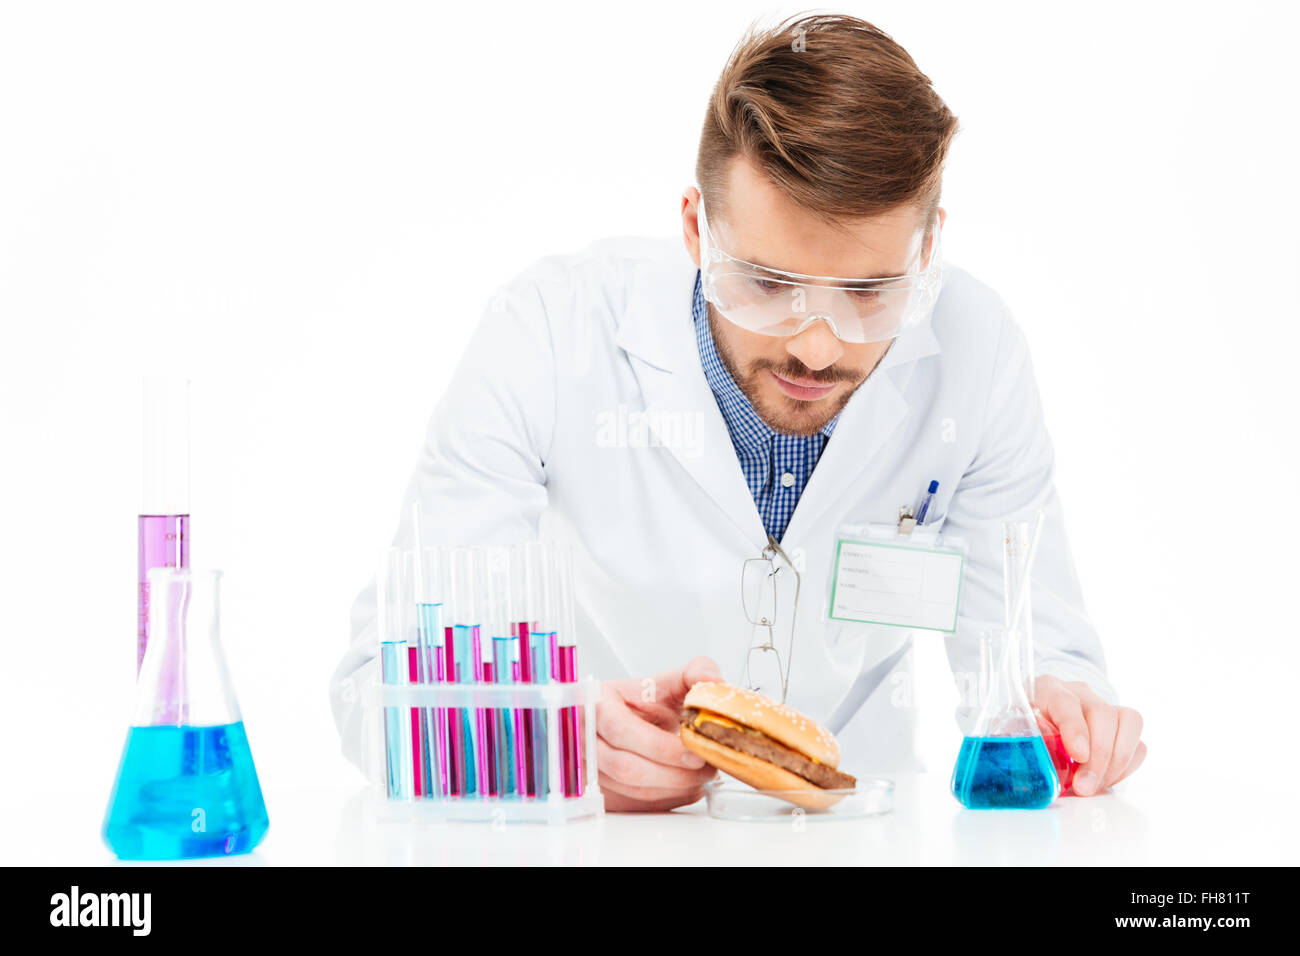 Male chemist making GMOs food isolated on a white background - Stock Image